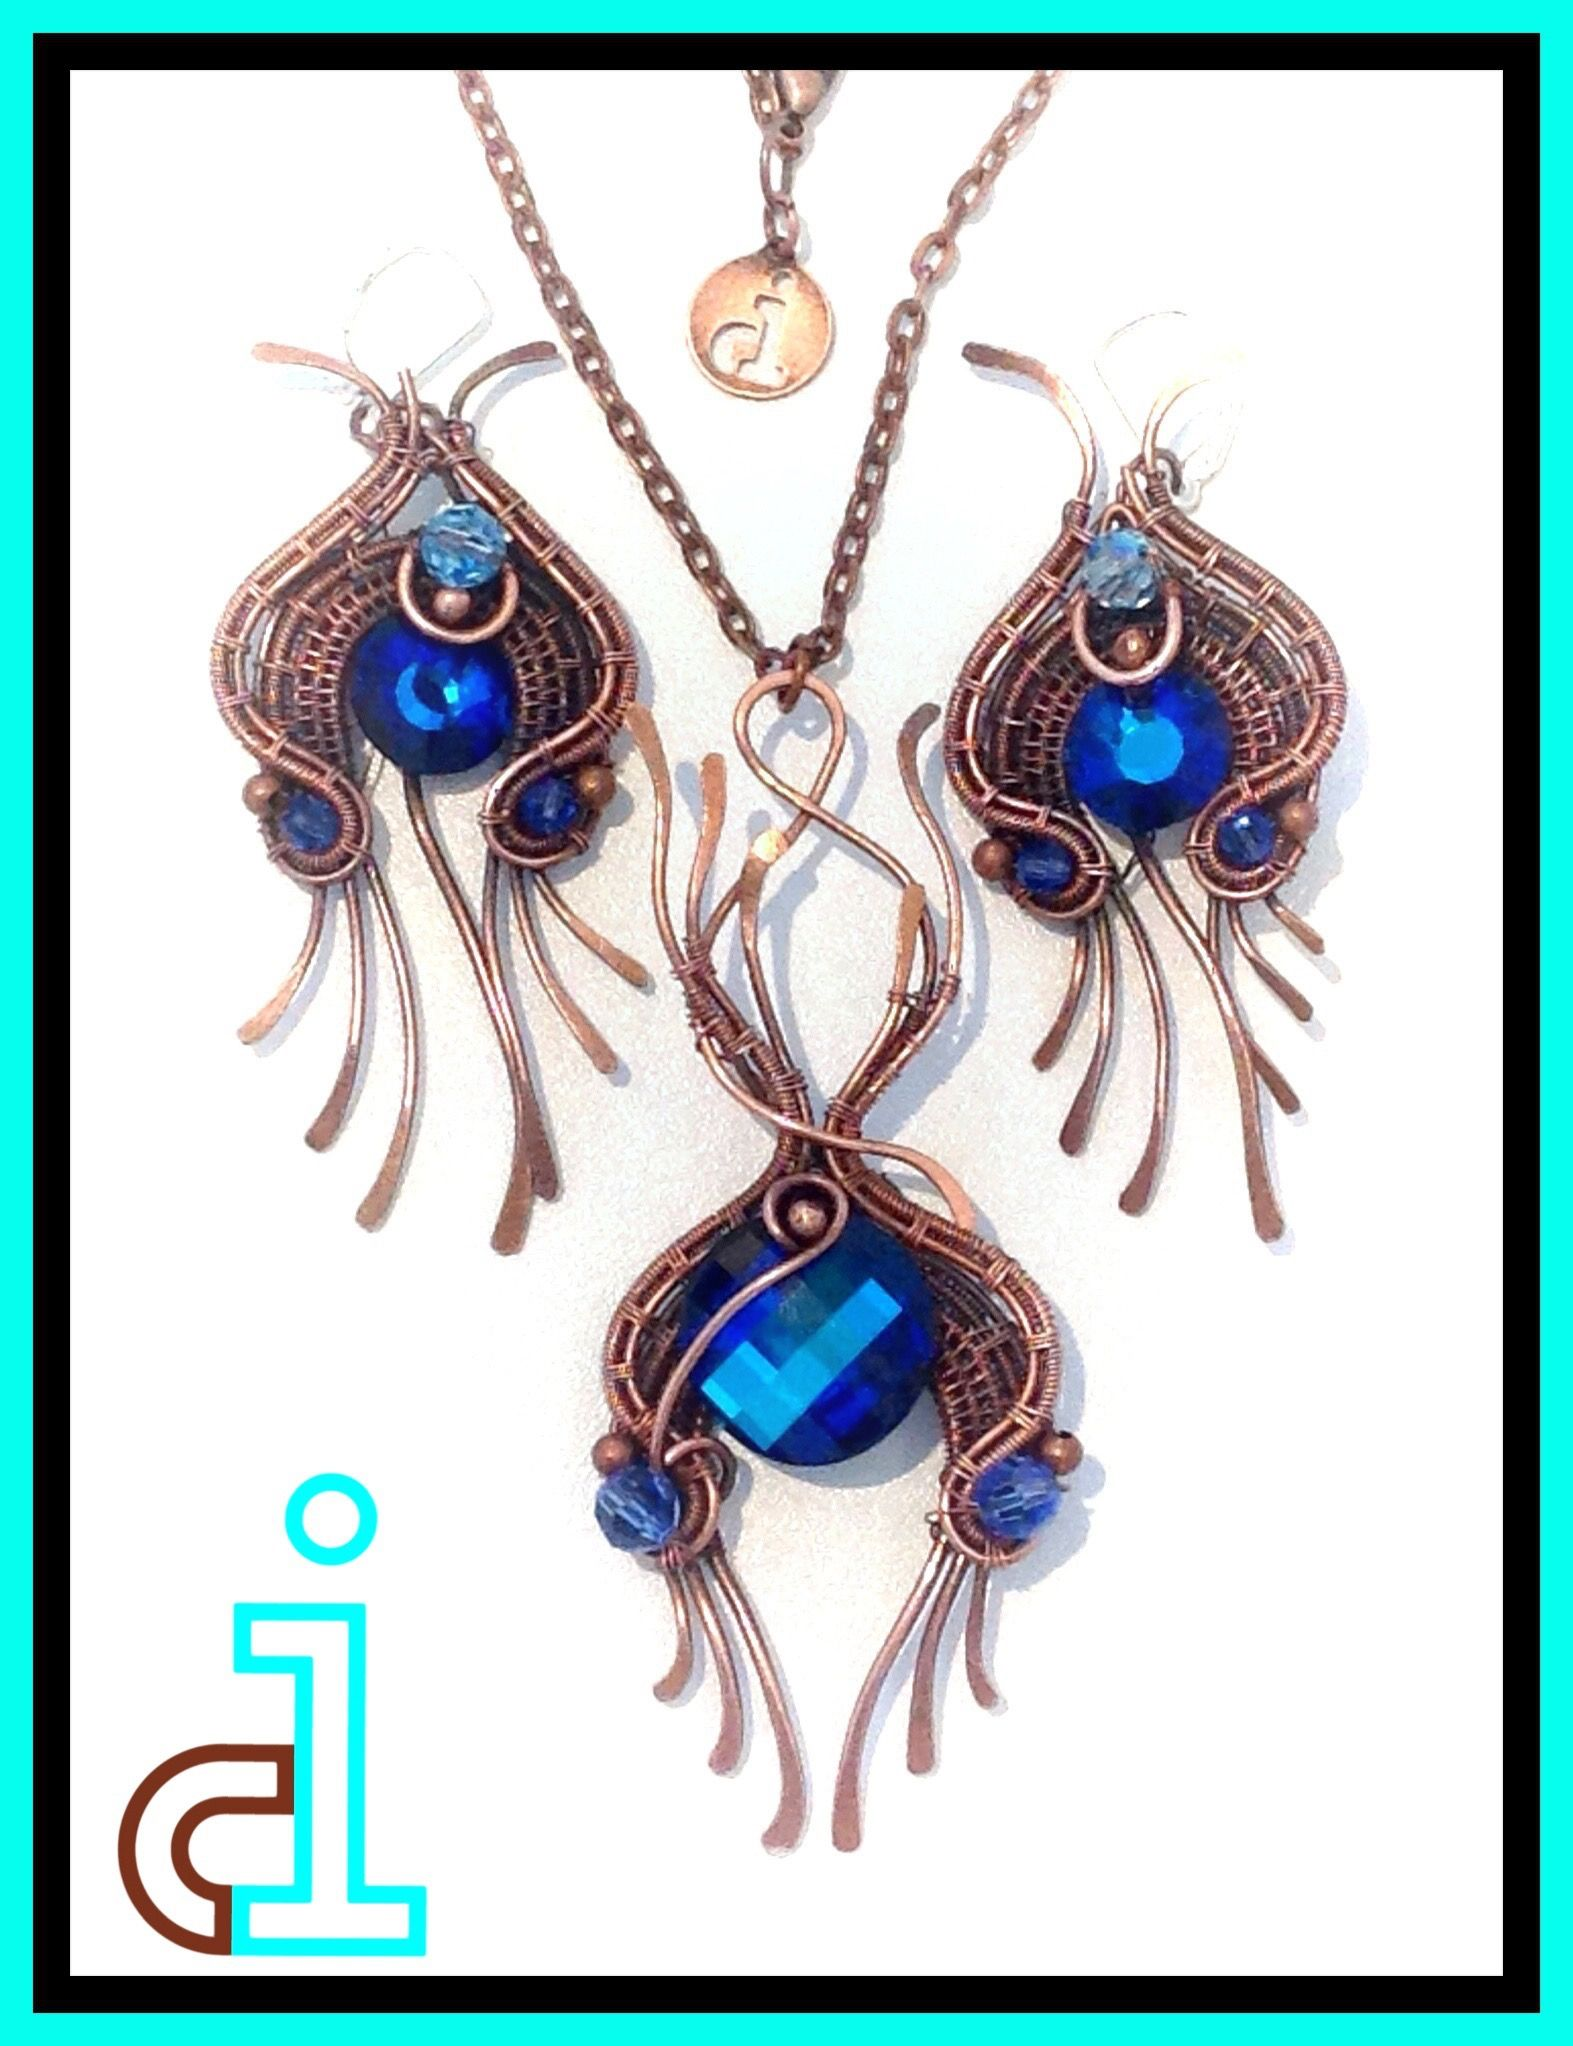 Pin by Andrea Eller on Crafts - Jewelry   Pinterest   Wire wrapping ...